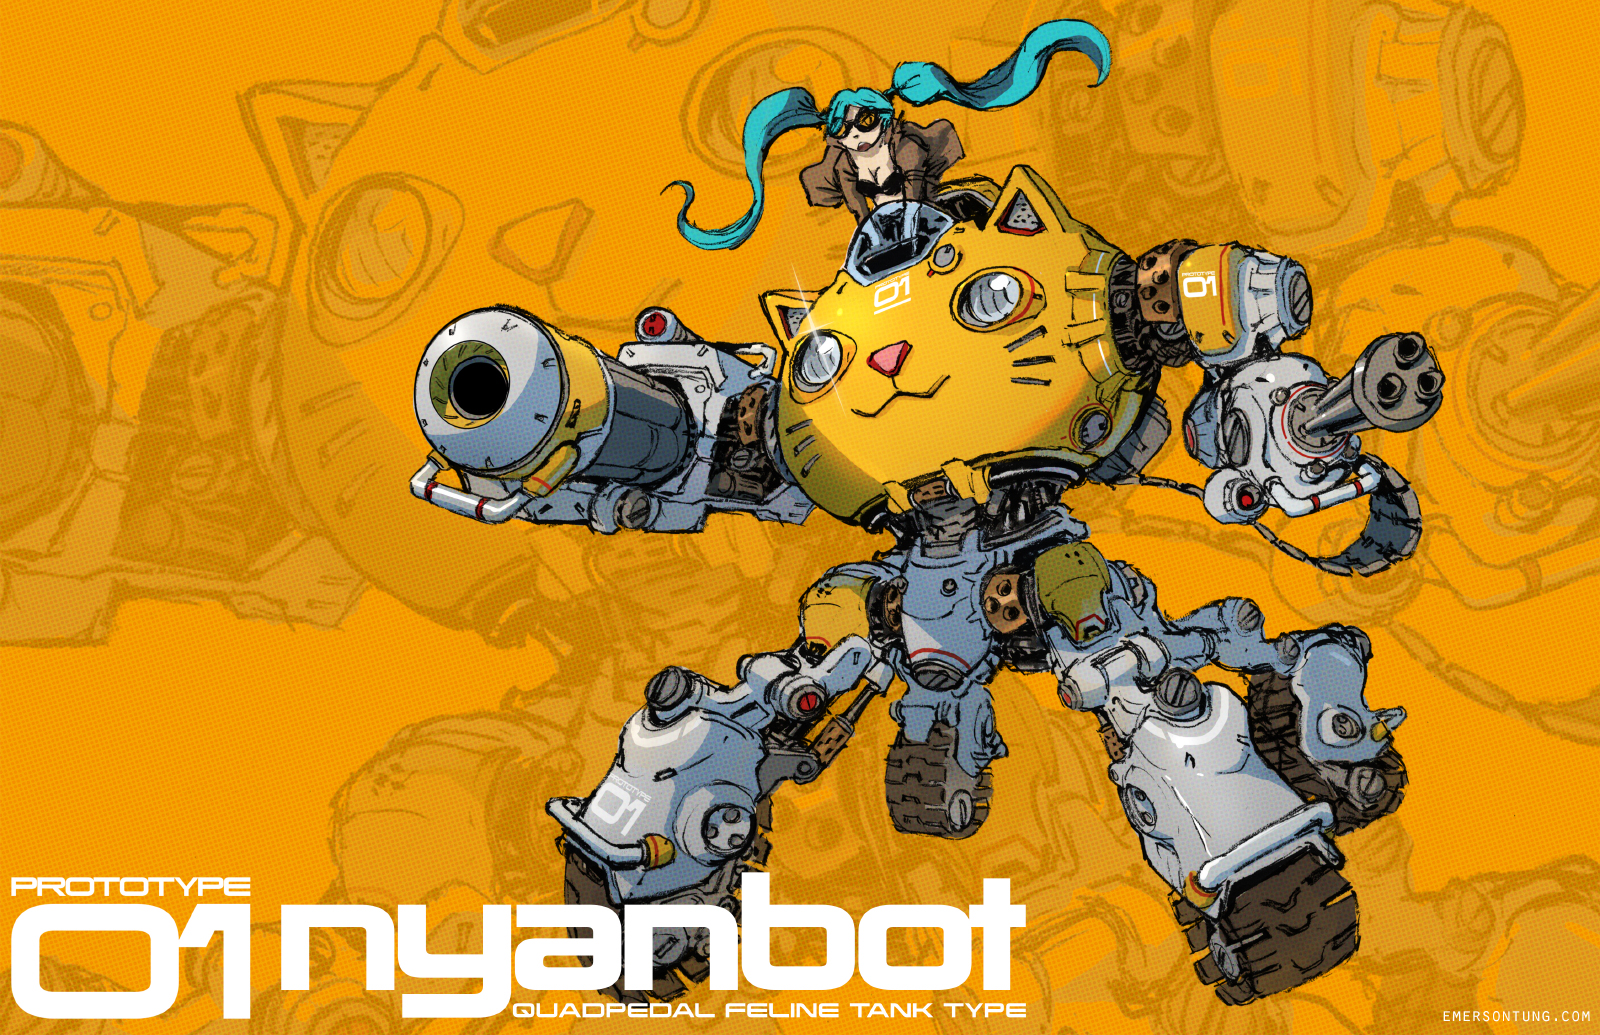 emerson_tung_nyanbot